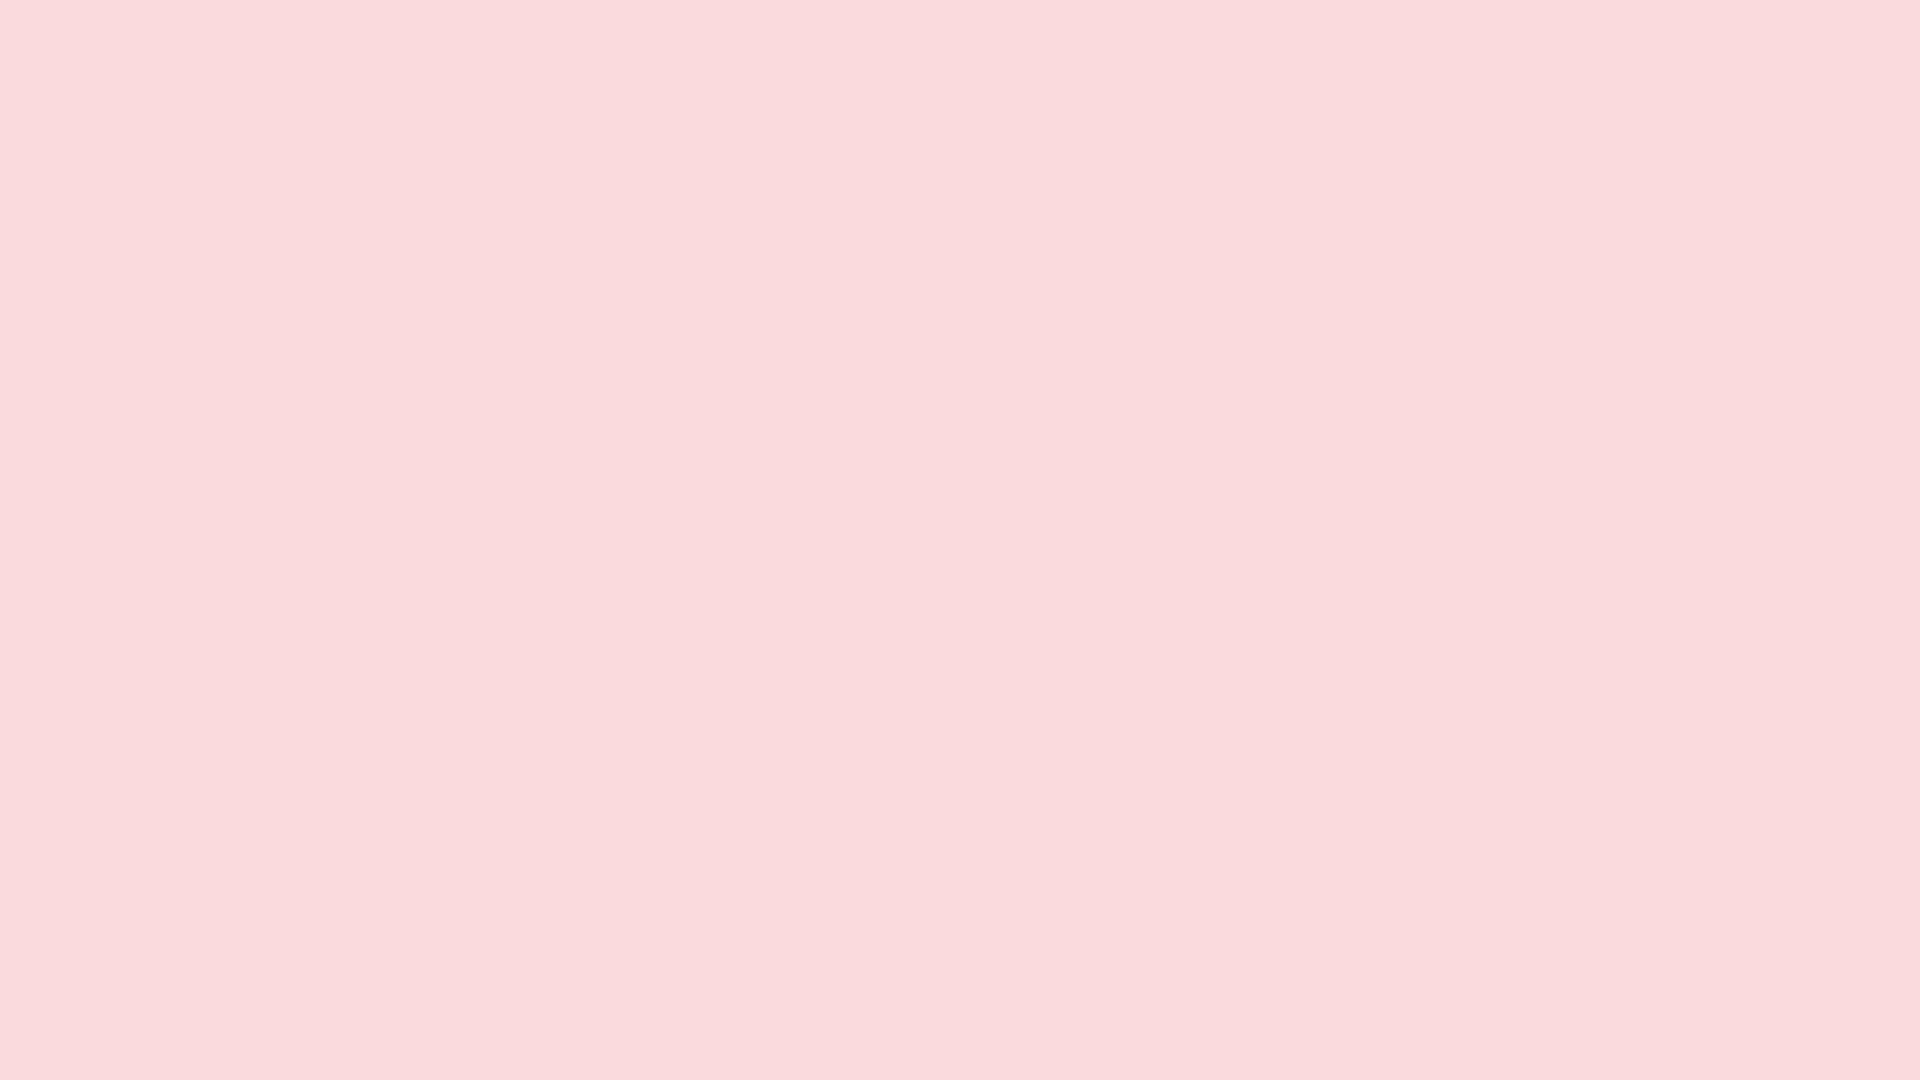 catalog/Home Page/1920x1080-pale-pink-solid-color-background.jpg